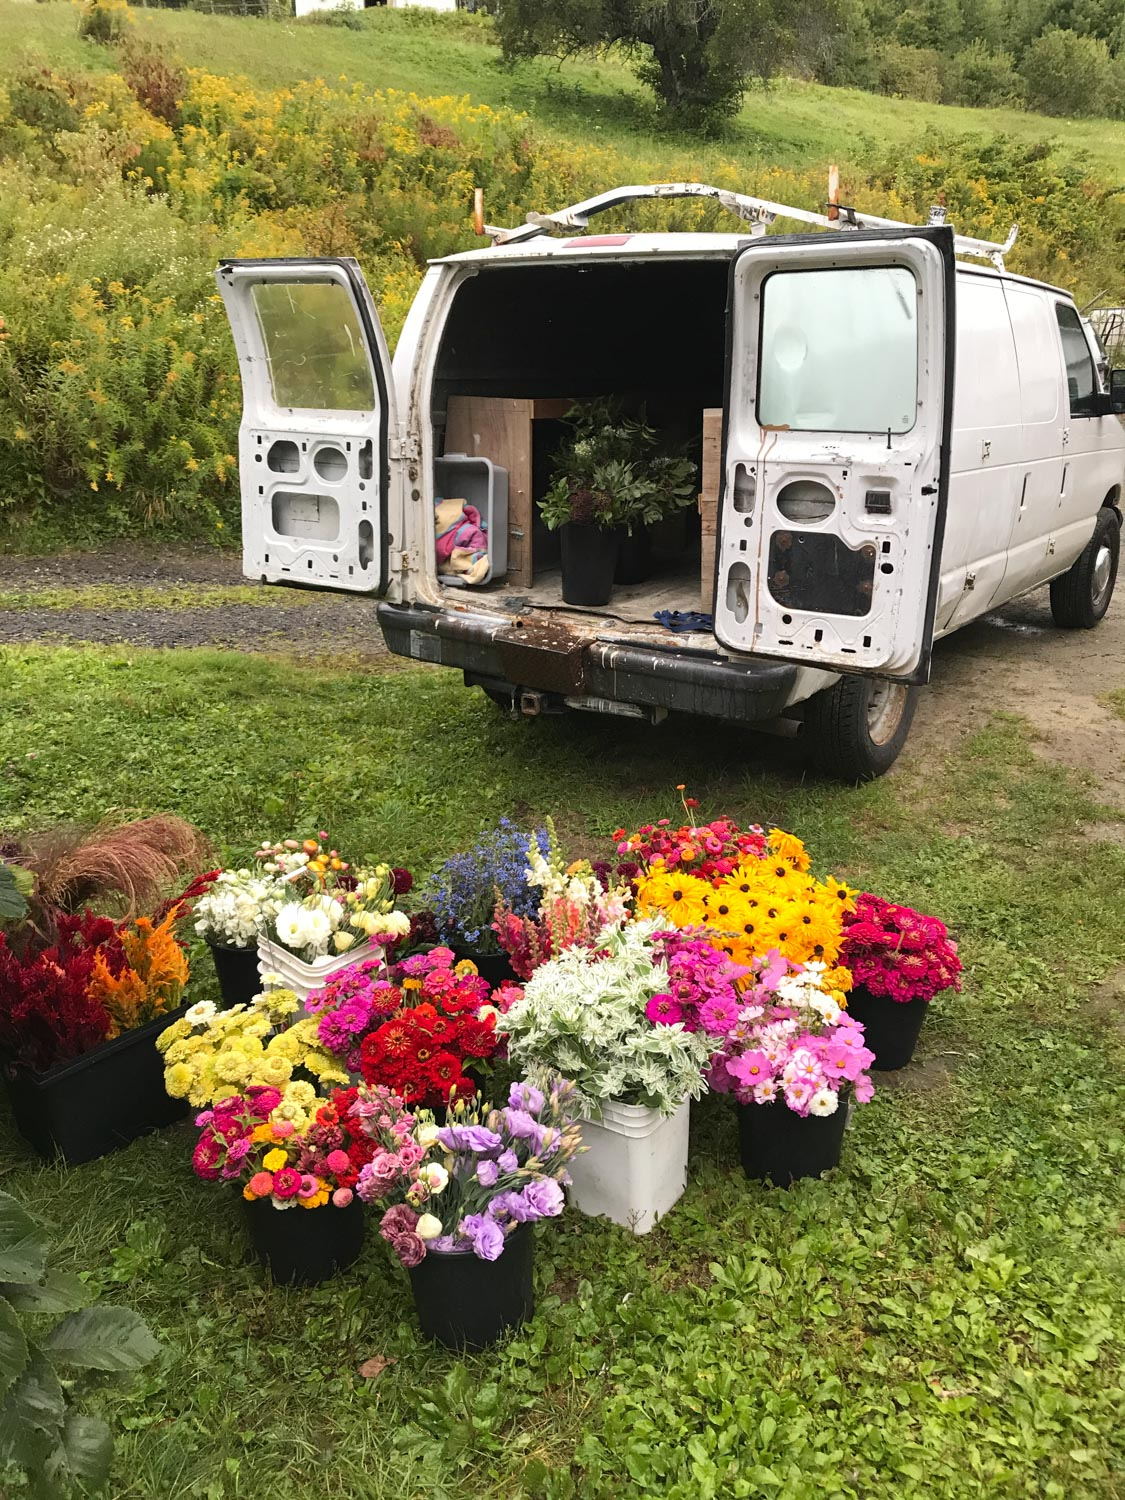 - We love working with florists and designers to provide Vermont grown, sustainable, chemical free blooms as an alternative to the largely toxic, conventionally grown foreign imports in the flower industry. We send out (mostly) weekly lists of flowers in bloom to local florists and can offer both pick up and delivery options depending on location and quantity. You can get on our weekly email list below or send us an email.